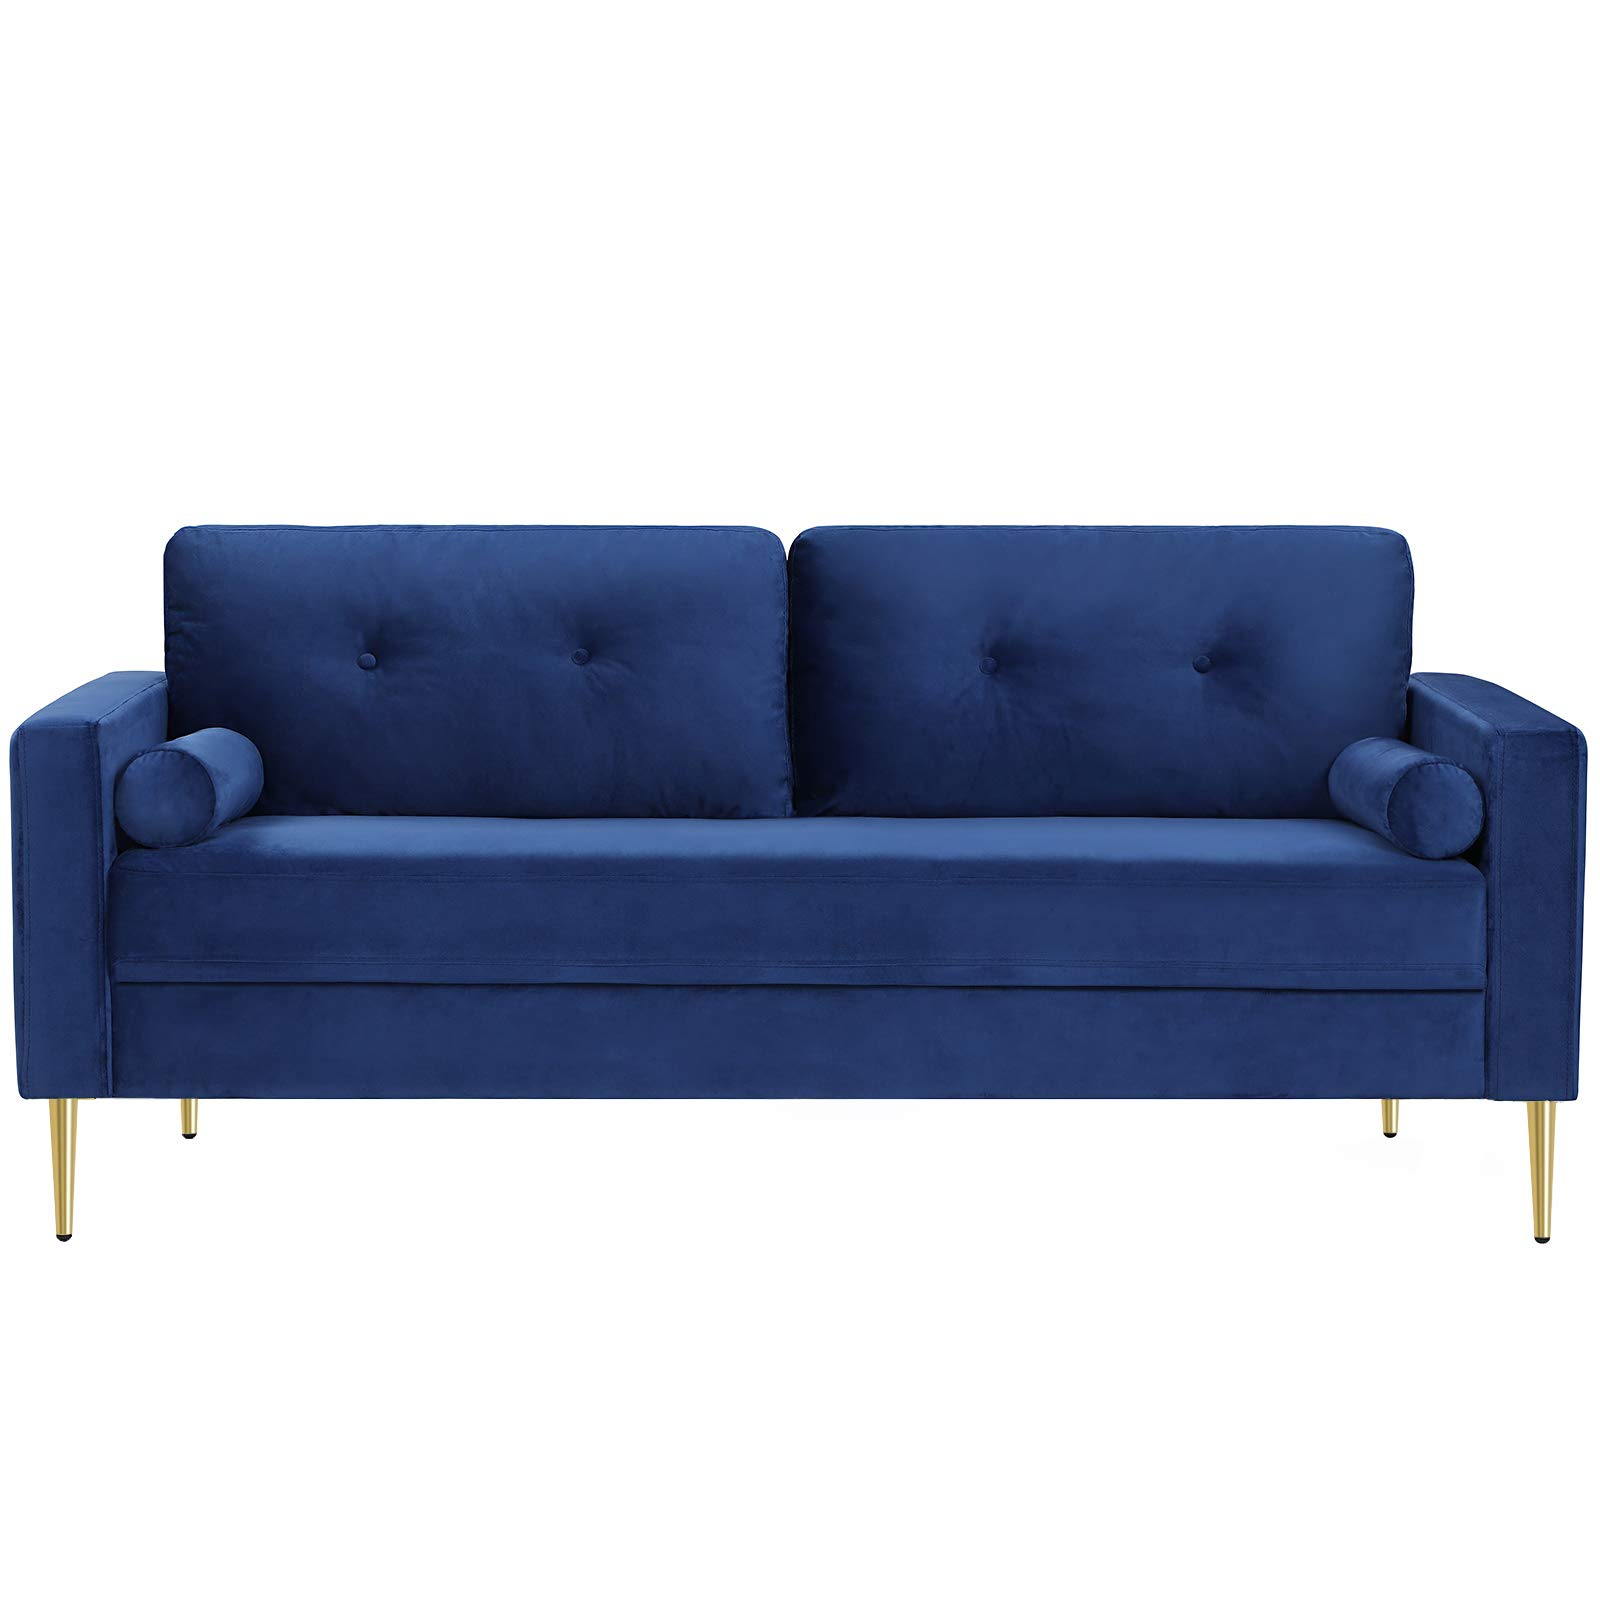 VASAGLE Velvet Sofa, Couch for Living Room, for Apartment, Small Space, Solid Wood Frame, Metal Legs, Easy Assembly, Mid-C...